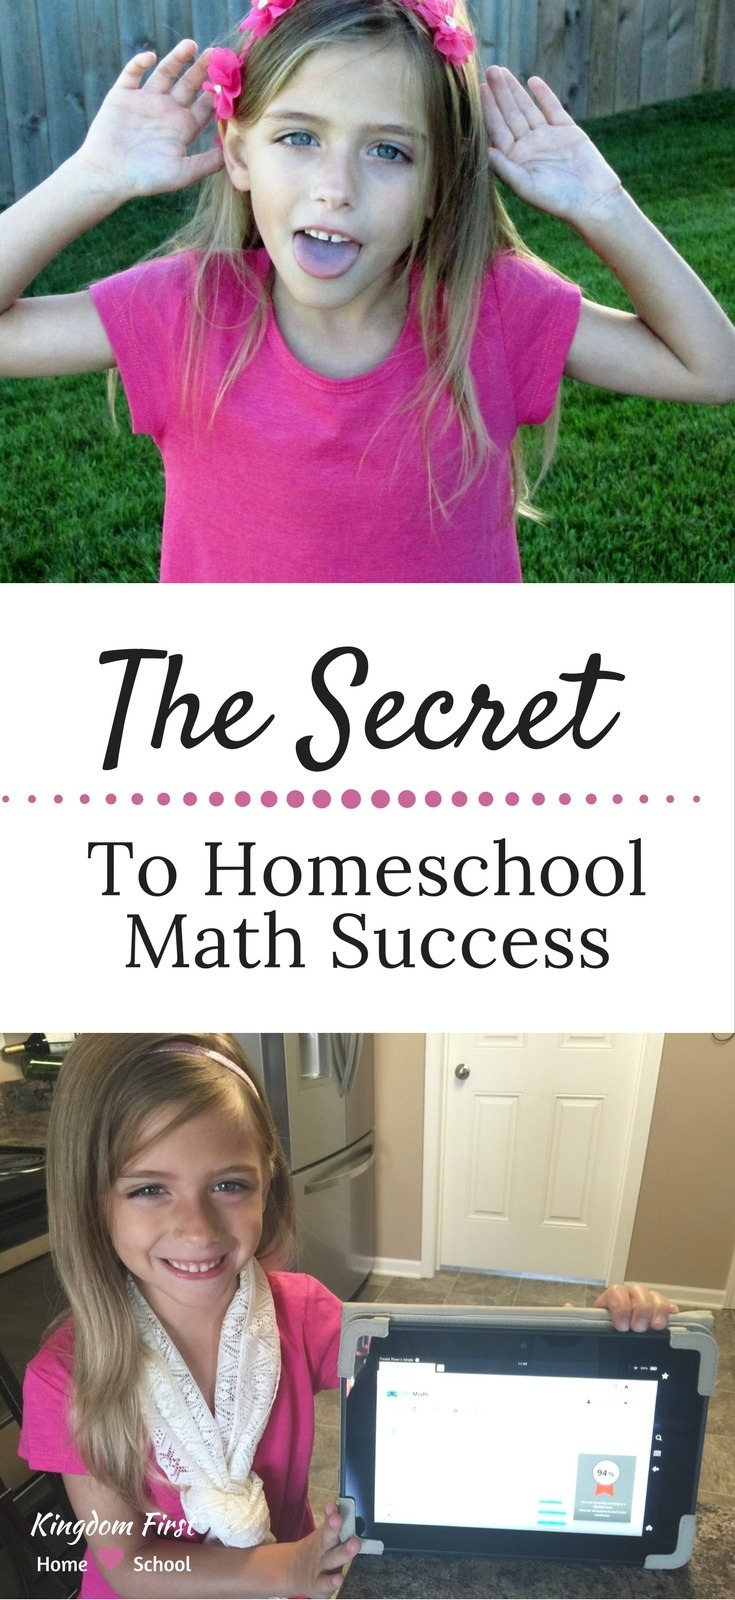 Finally! The Secret to homeschool math success!